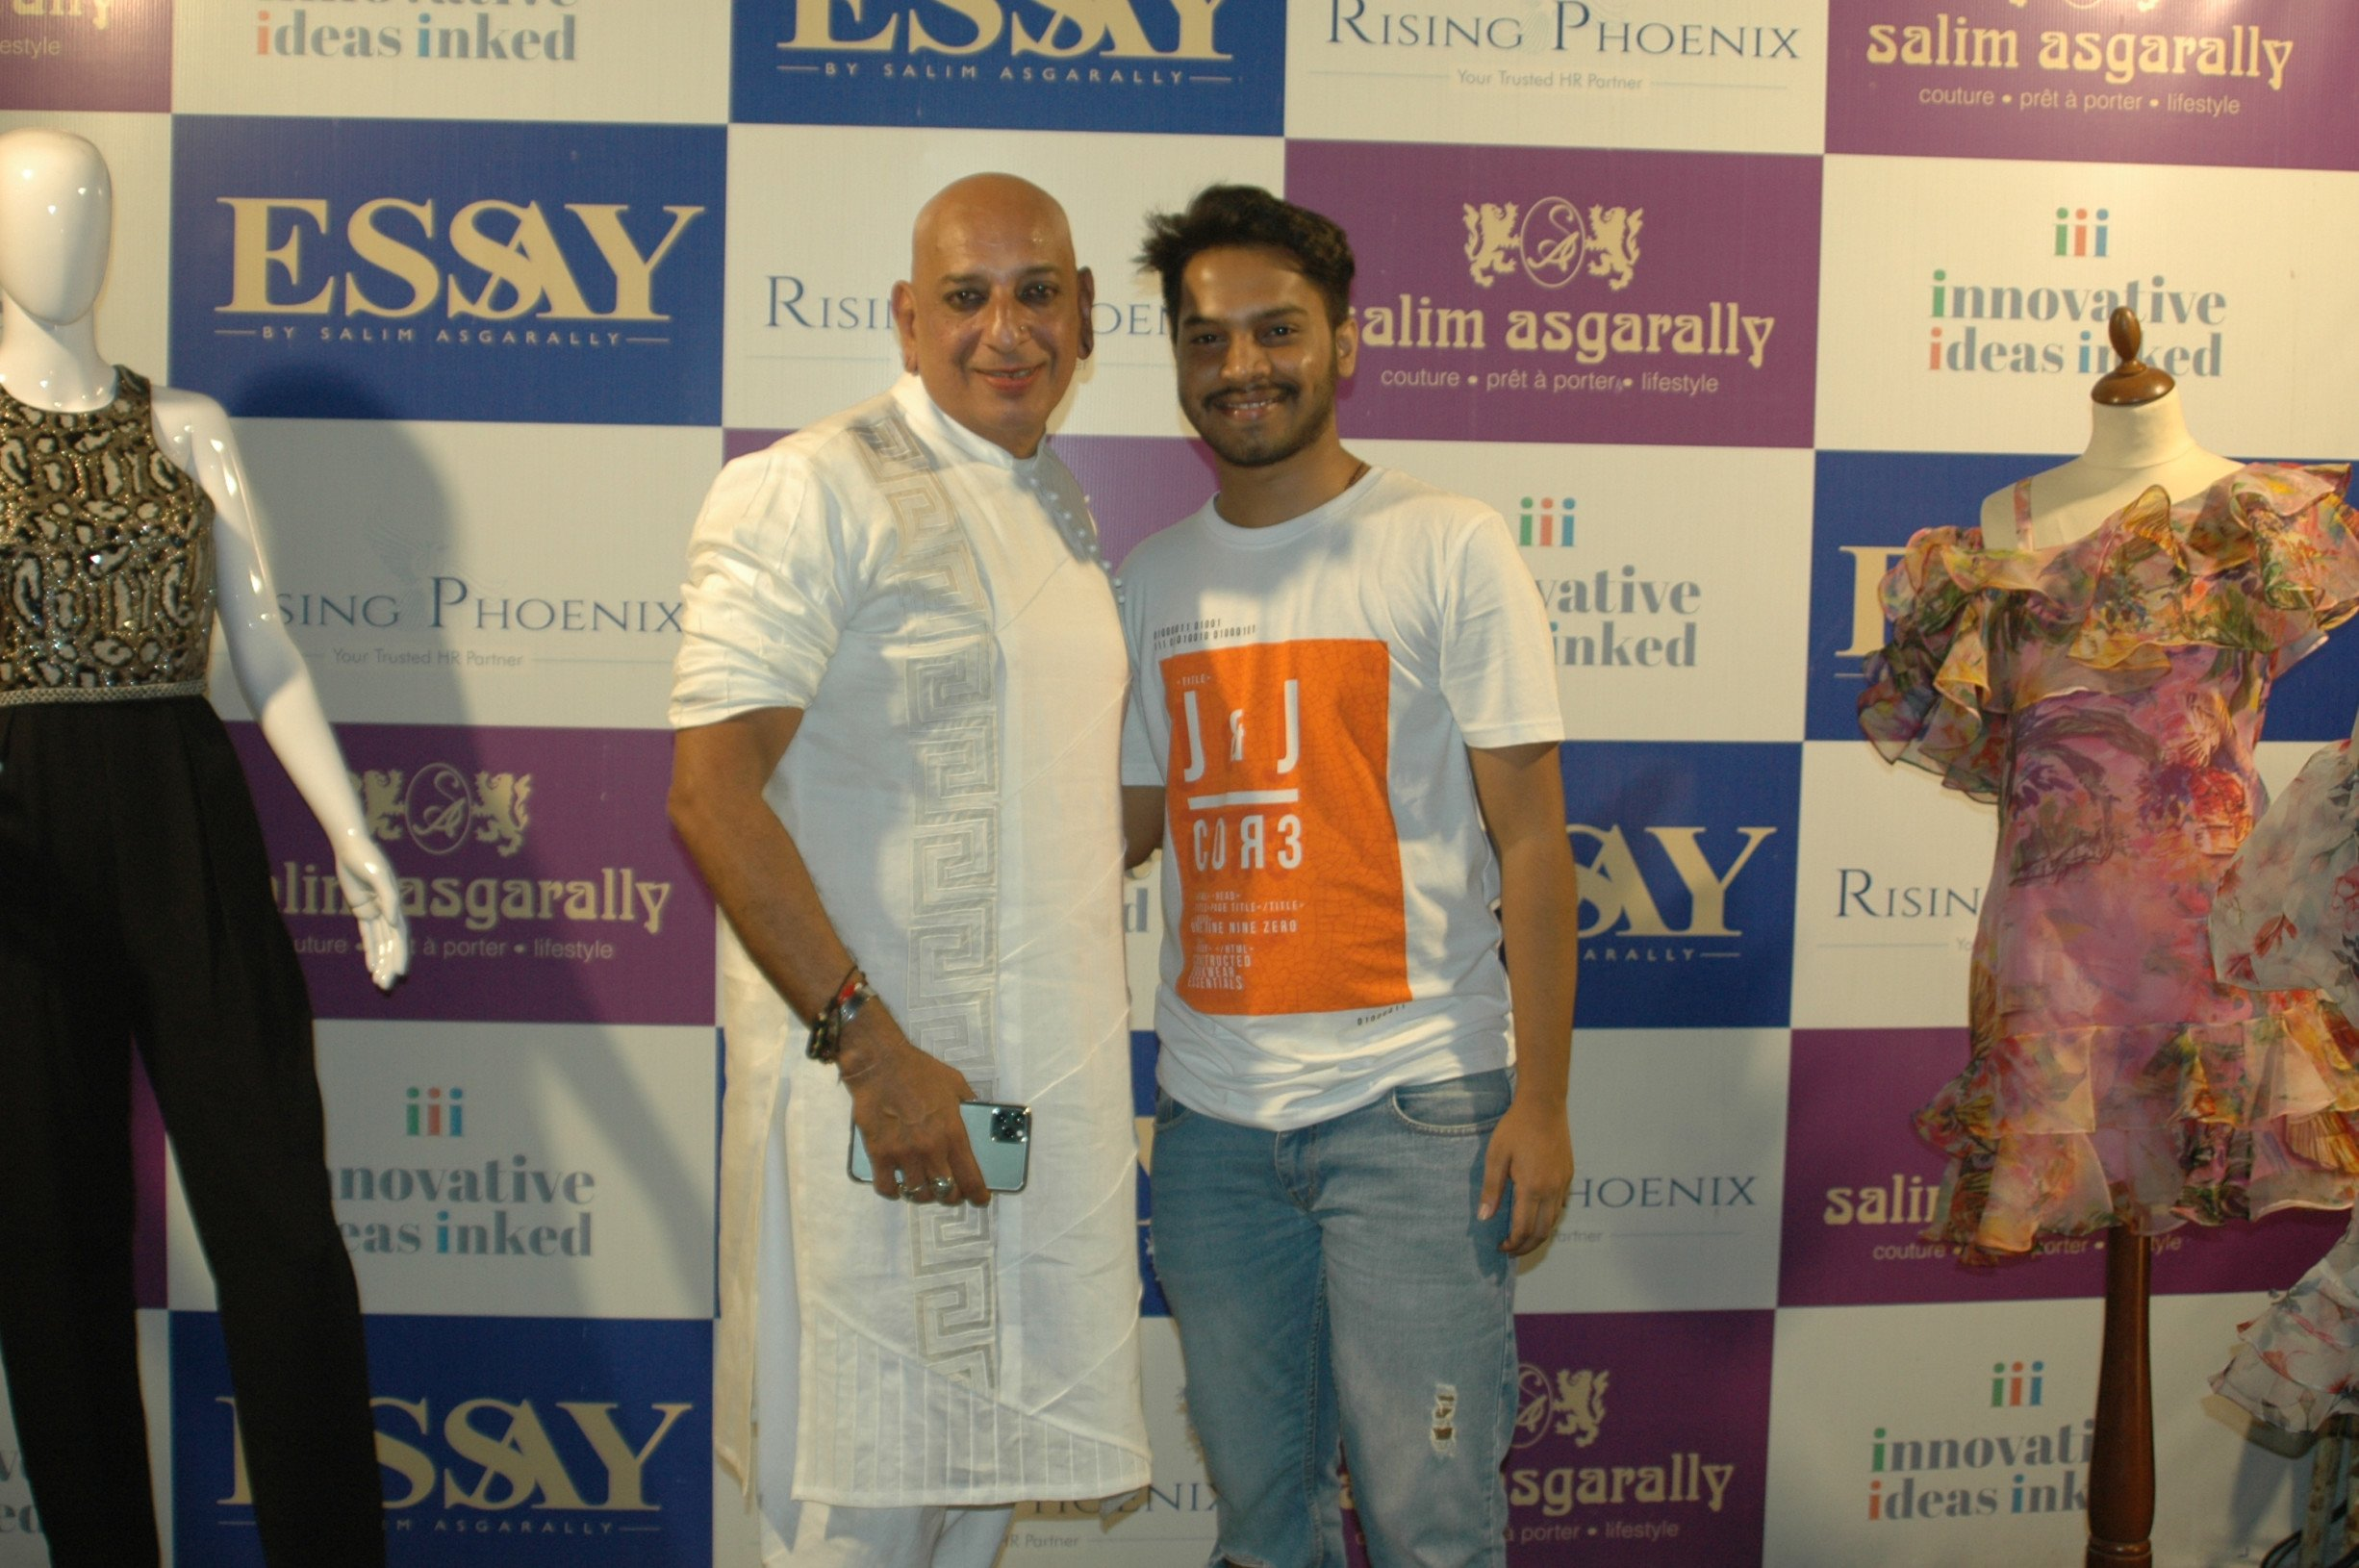 Designer Salim Asgarally Introduces His New Collection